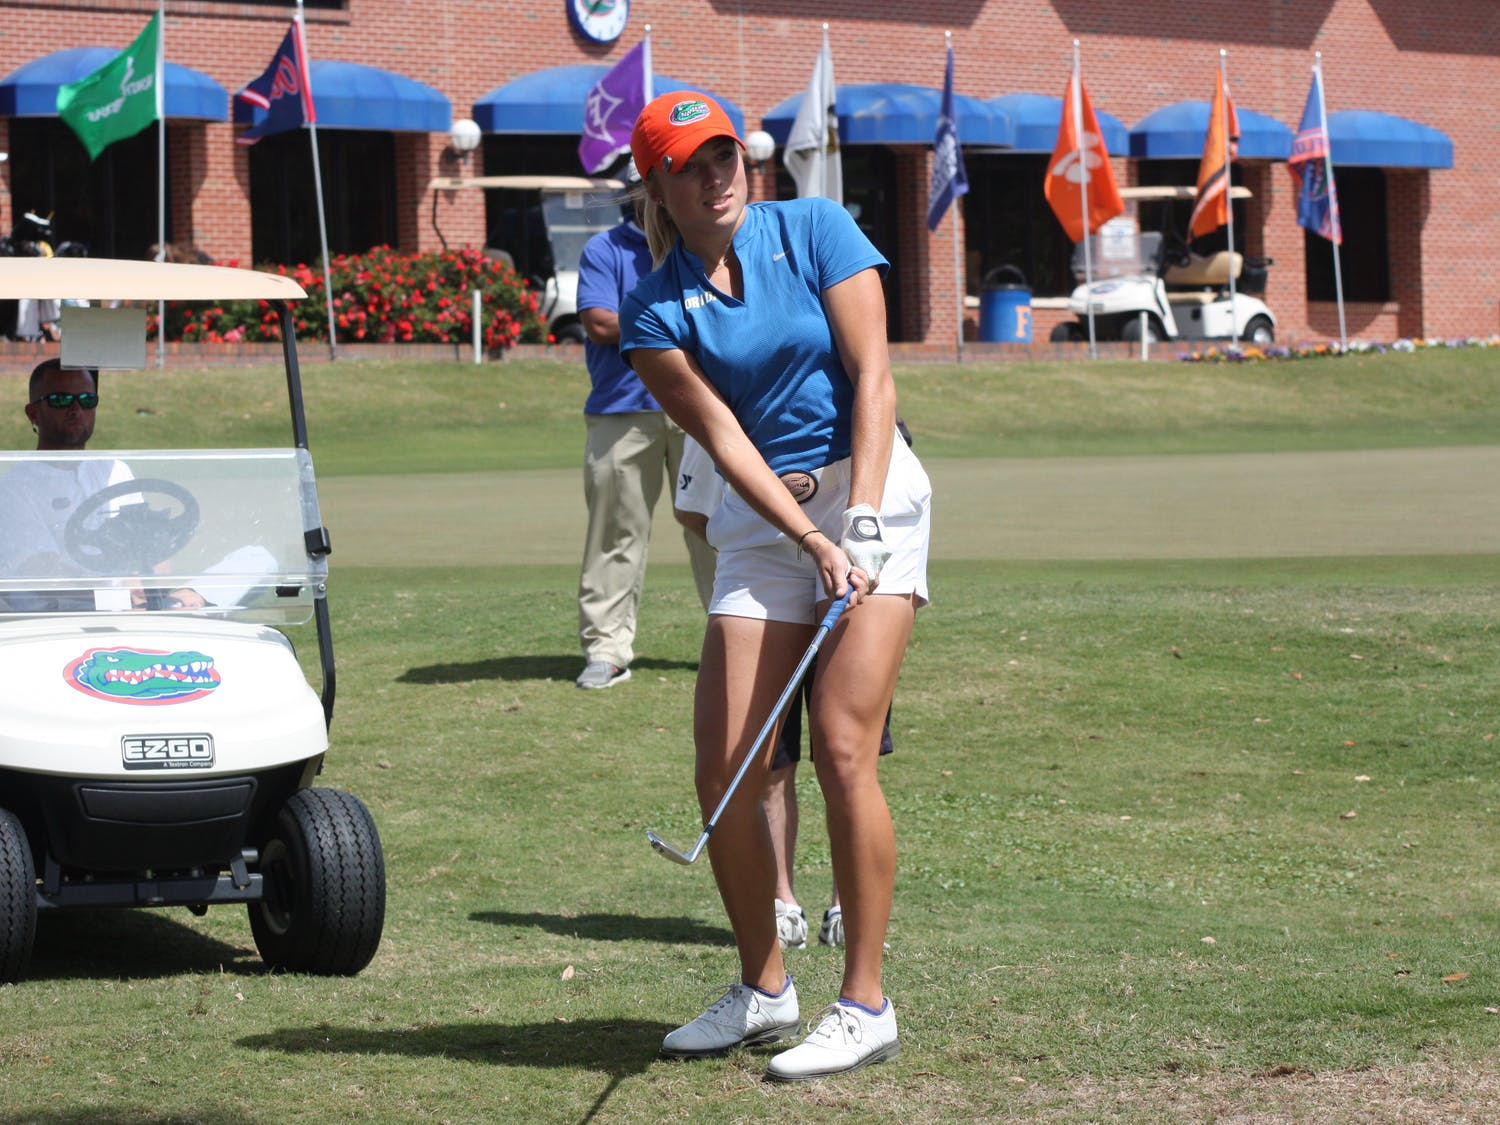 Florida golfer Sierra Brooks tied for 10th at the Augusta National Women's Amateur with a score of 1 over.